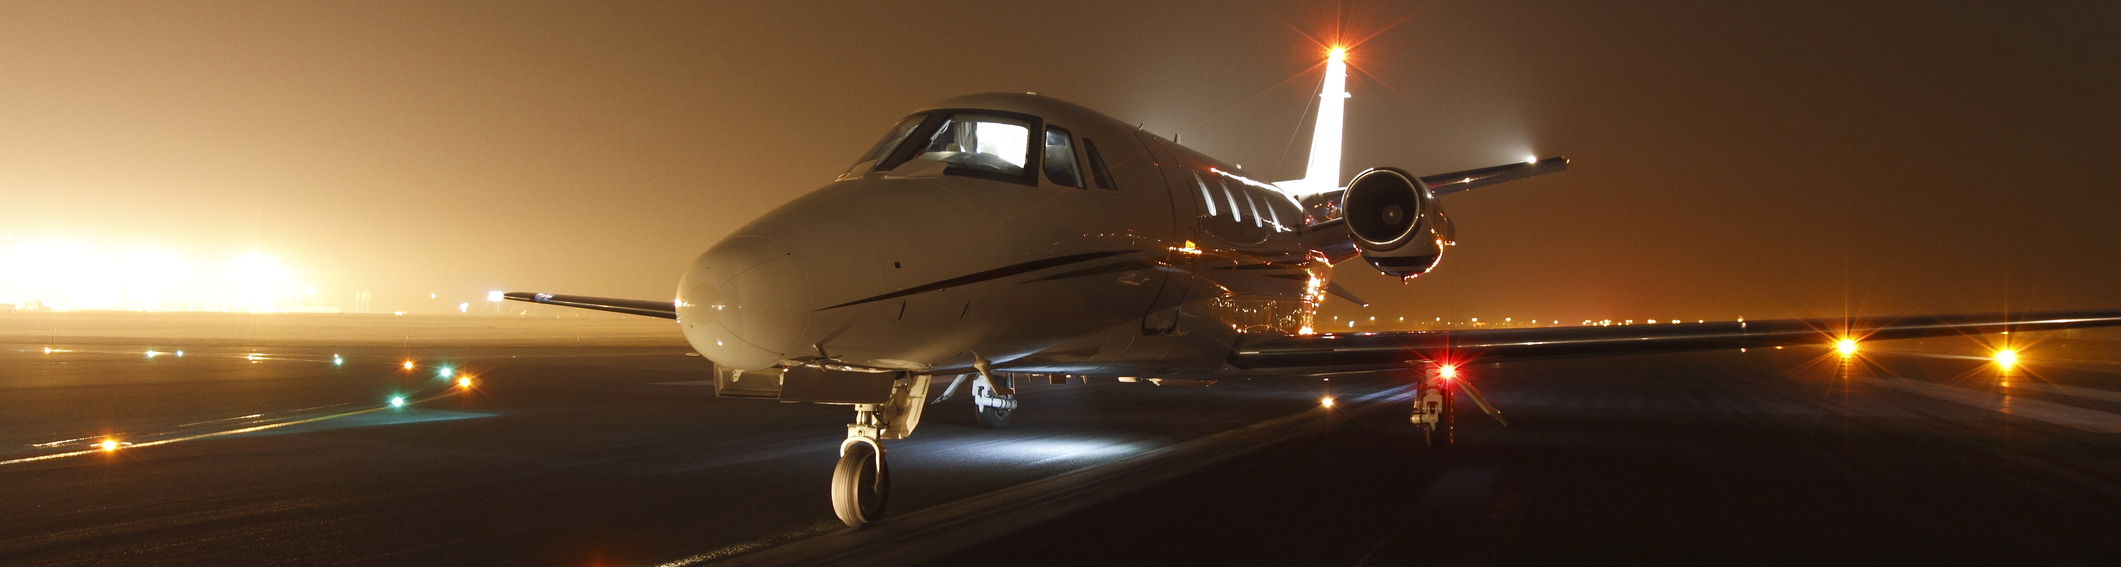 Business jet ready for take off